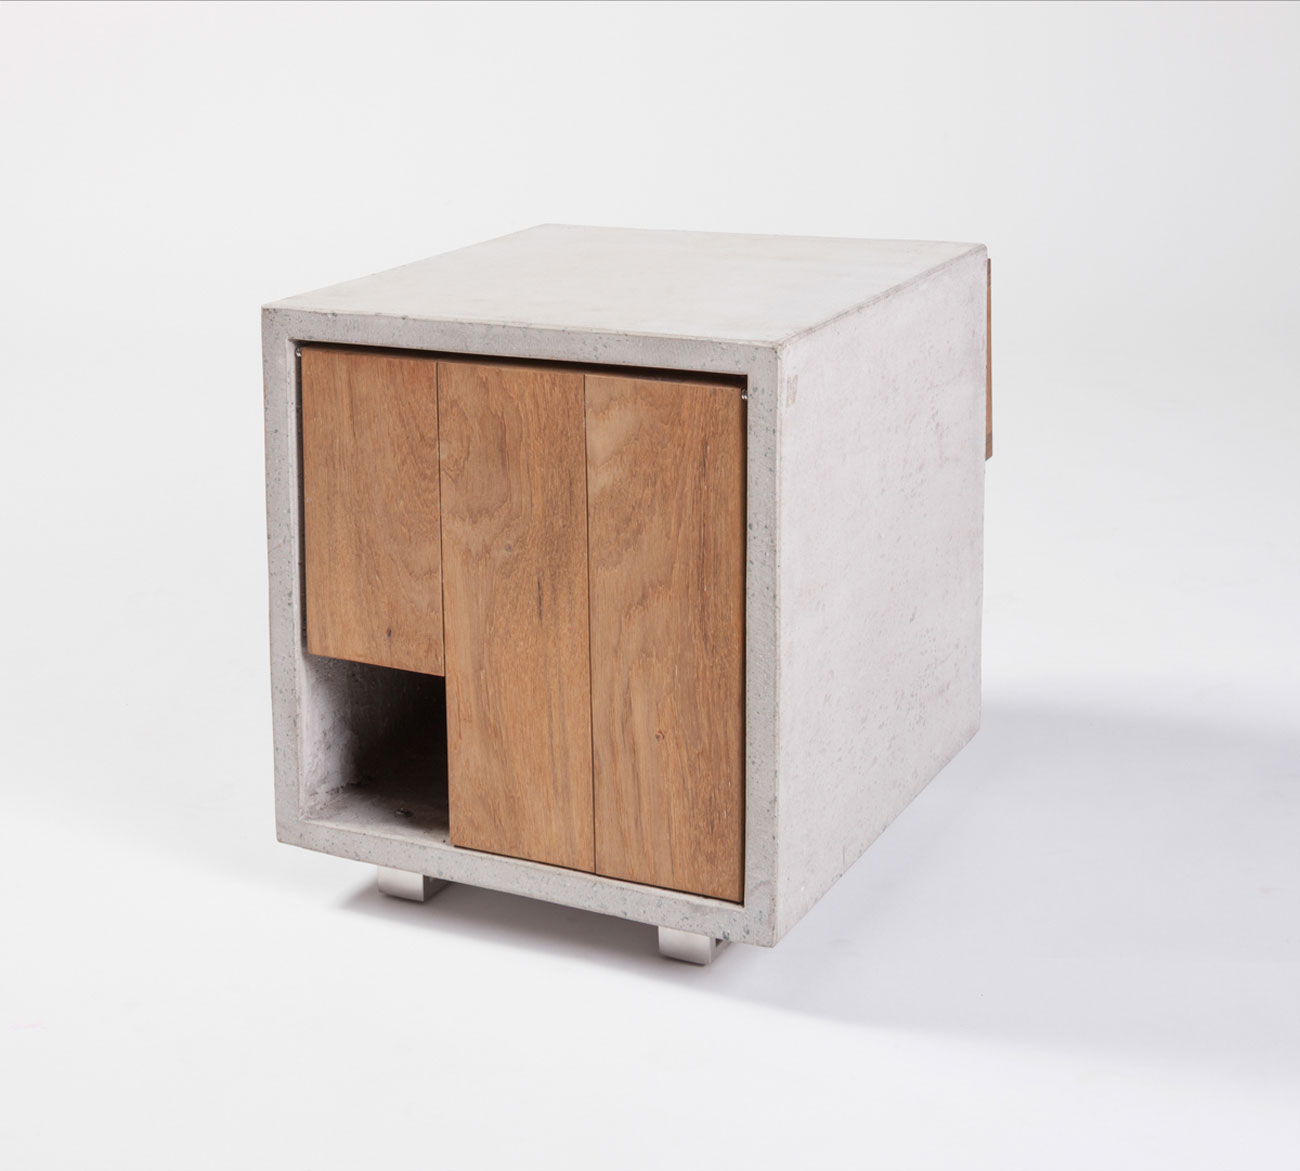 architects for animals concrete